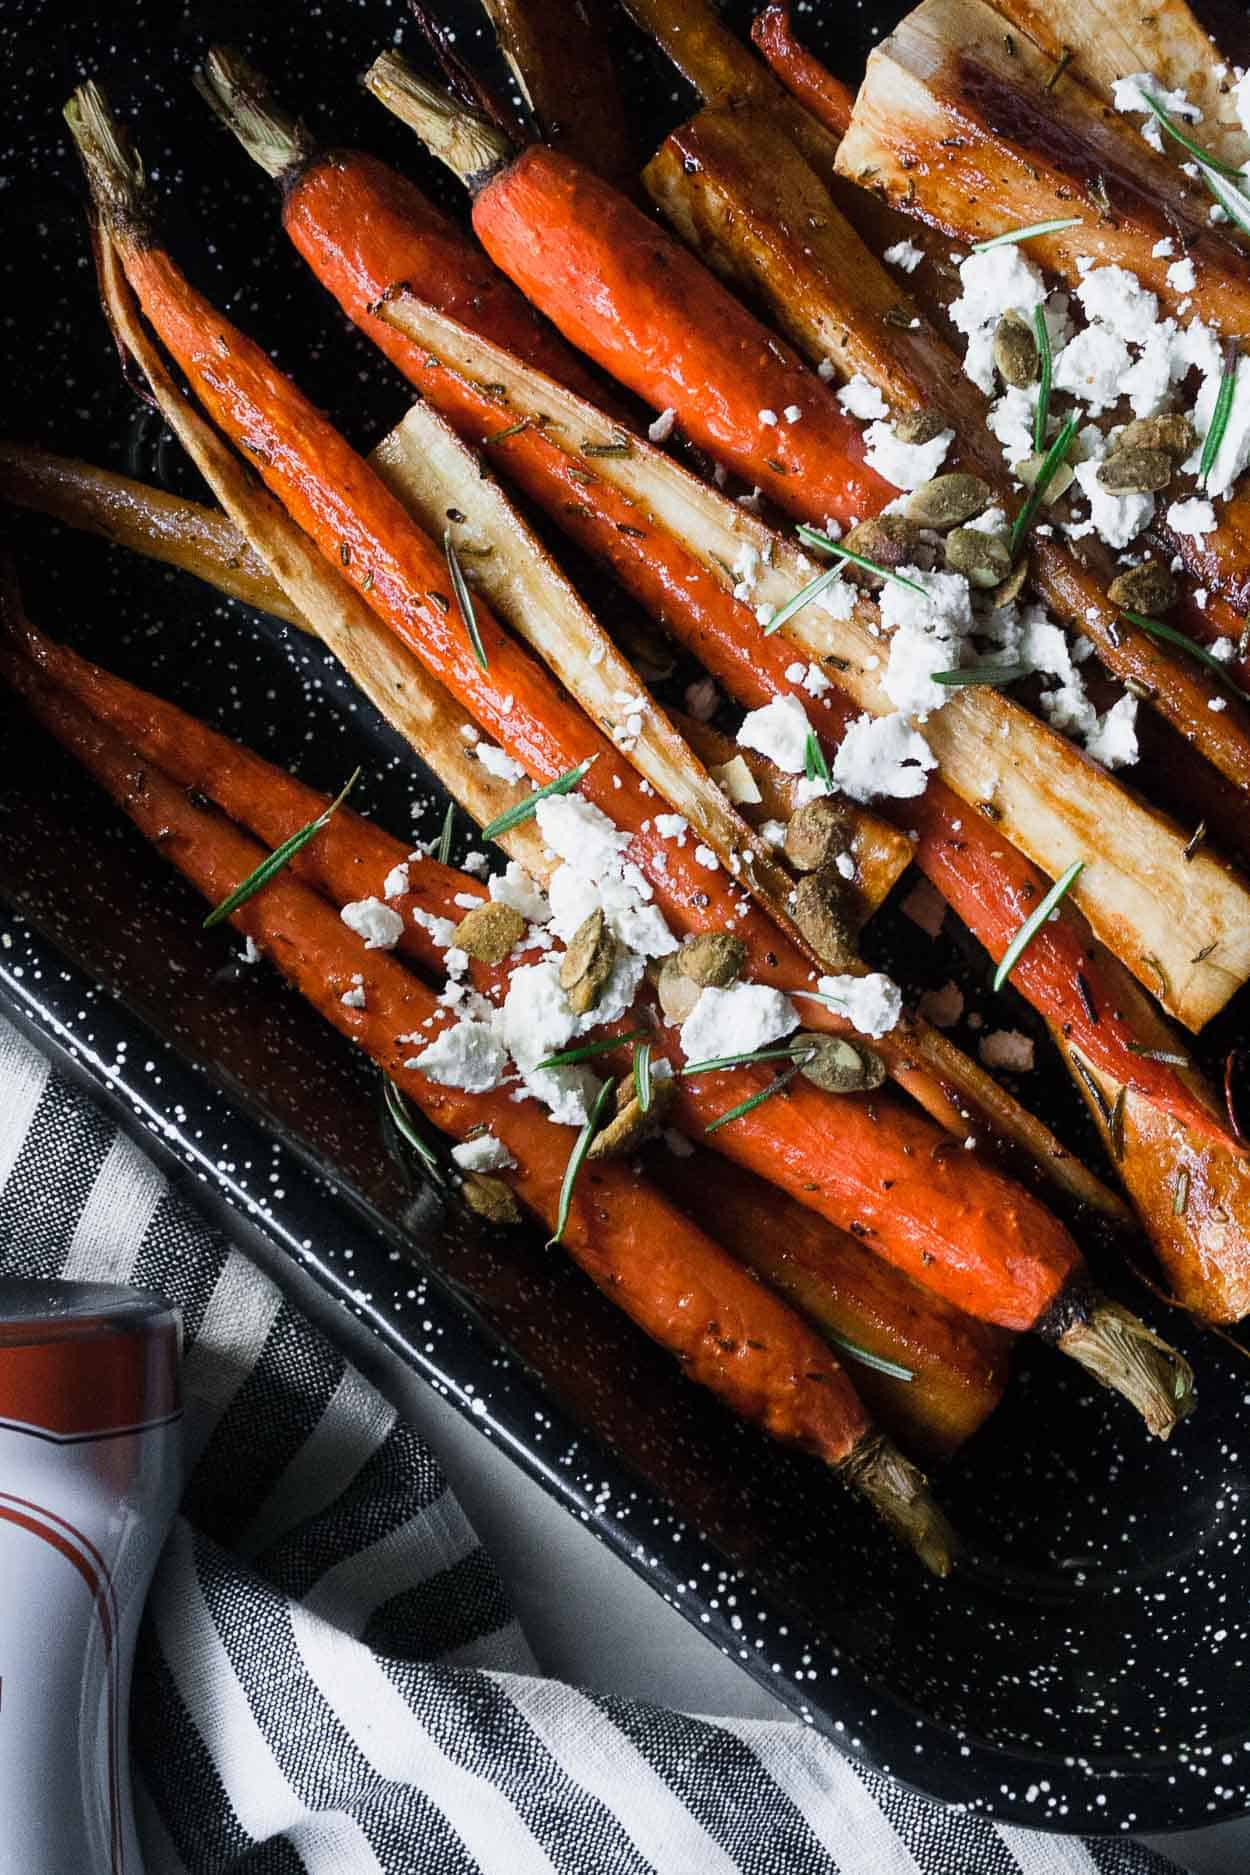 Spiced Roasted Parsnips and Carrots | #datesyrup #sidedish #vegetables #glutenfree #paleo #grainfree #easy #holiday | hungrybynature.com